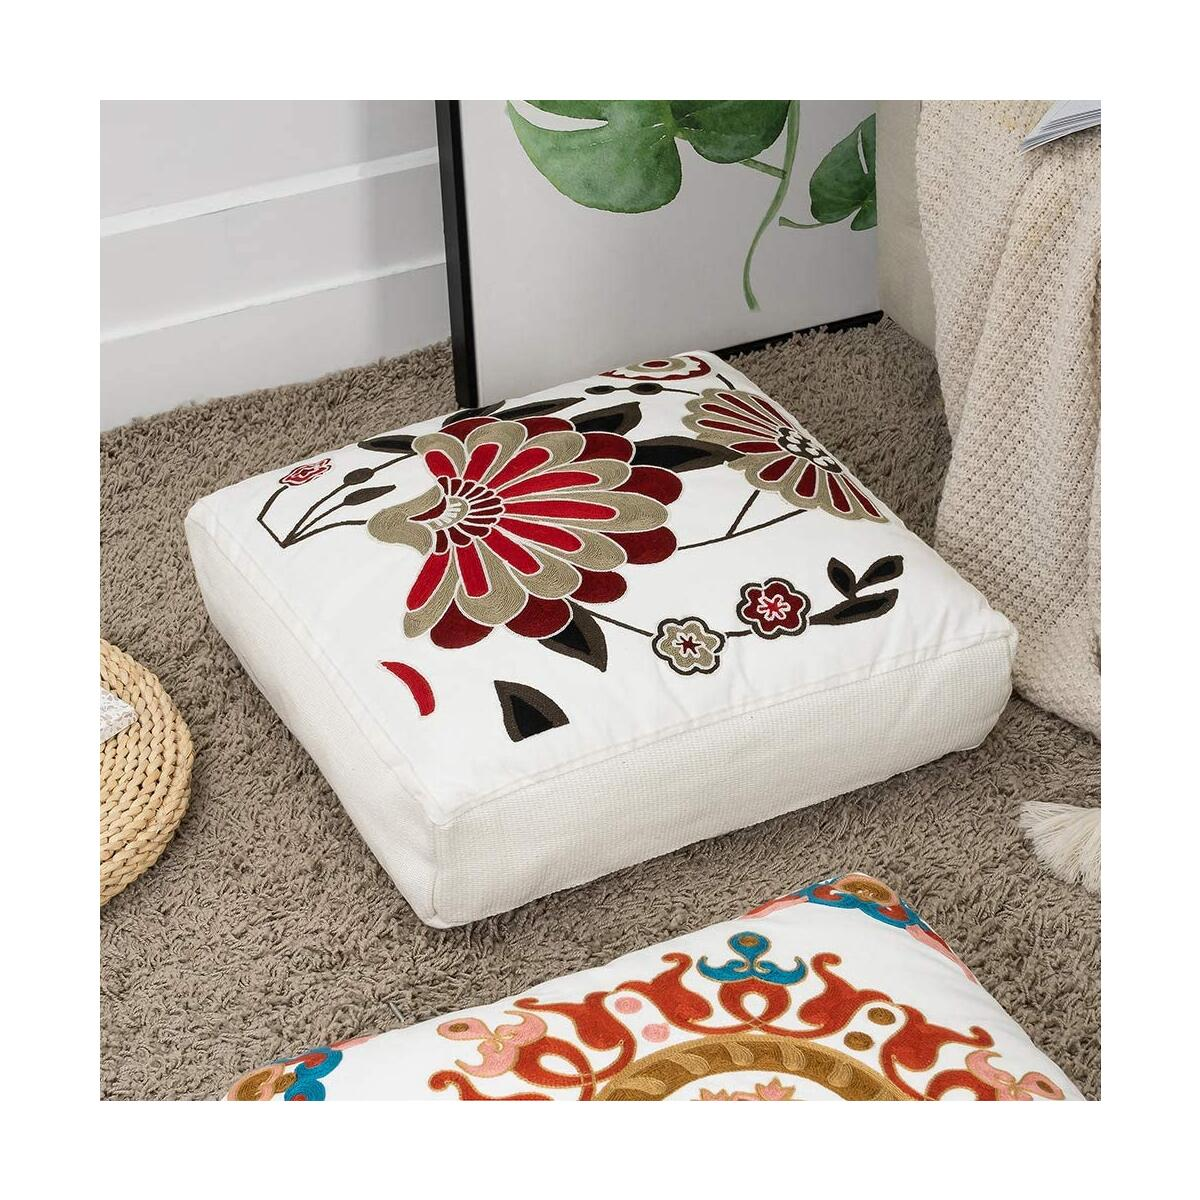 「ALL COLOR AVAILABLE」Large Floral Embroidery Floor Pillow Cushion, 20x20 Inches